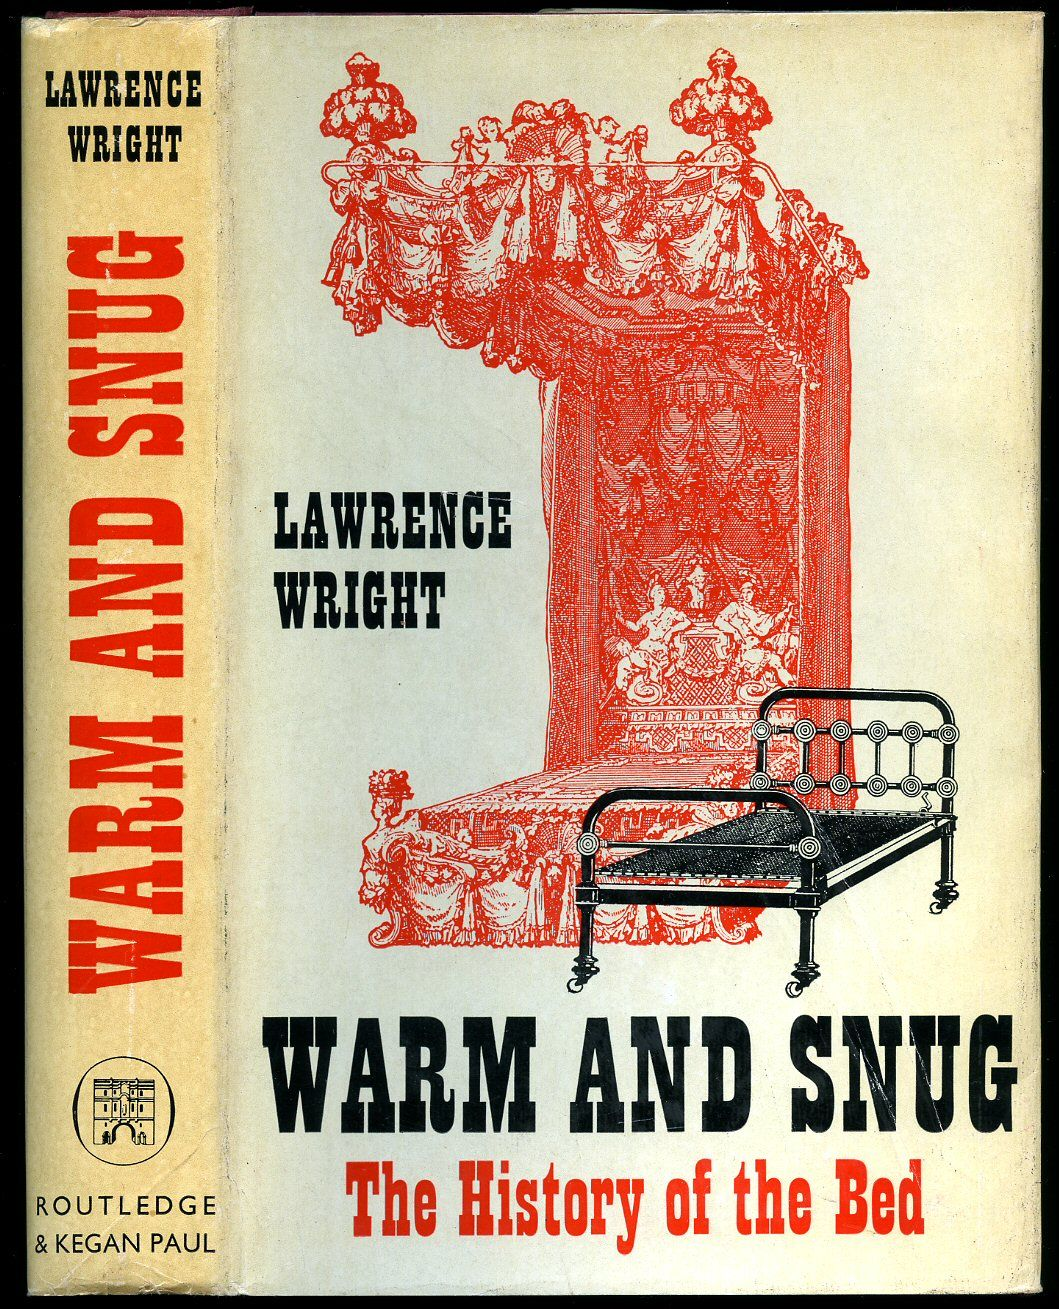 Warm And Snug The History Of The Bed By Lawrence Wright